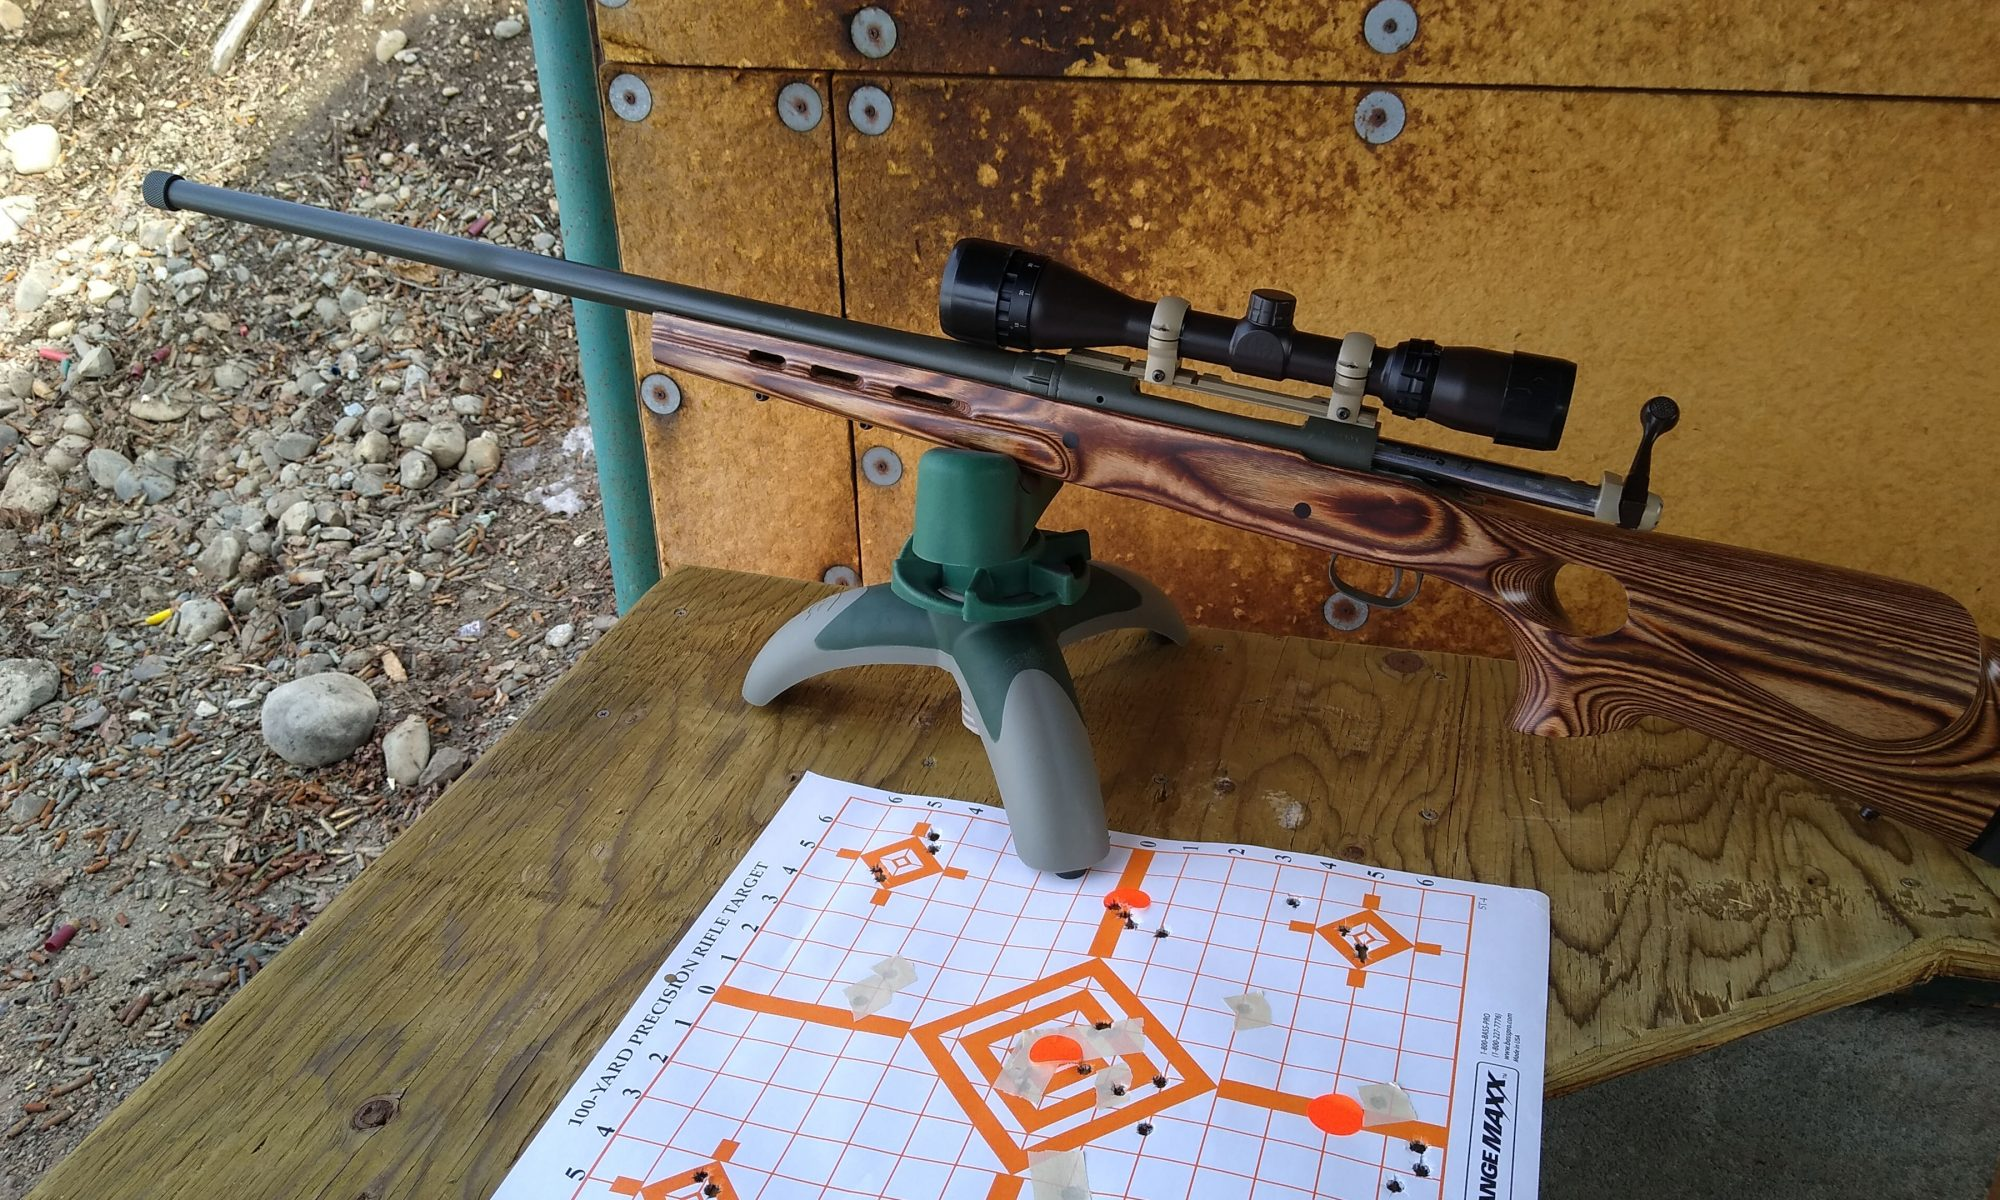 Long range hunting rifle on bench with target